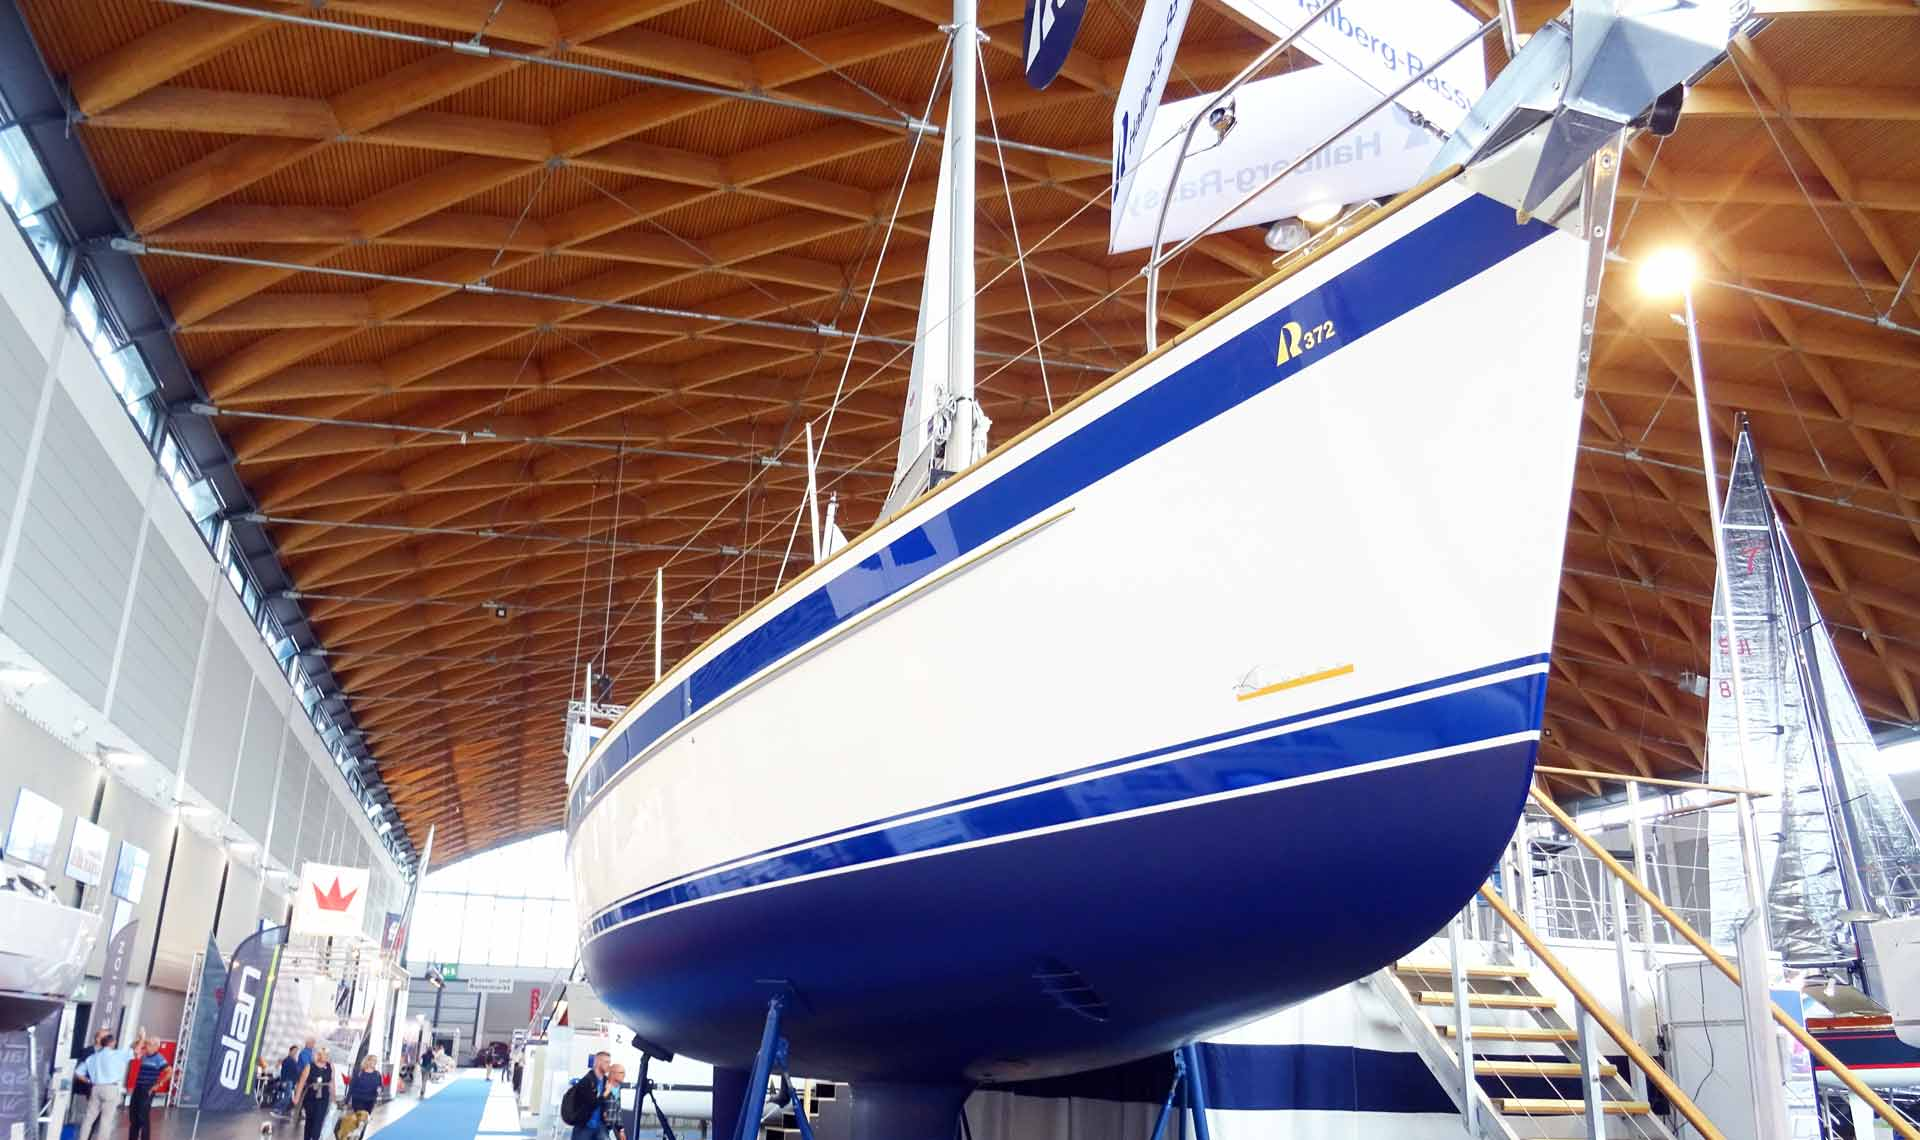 Now to the Queen of cruising: Hallberg-Rassy